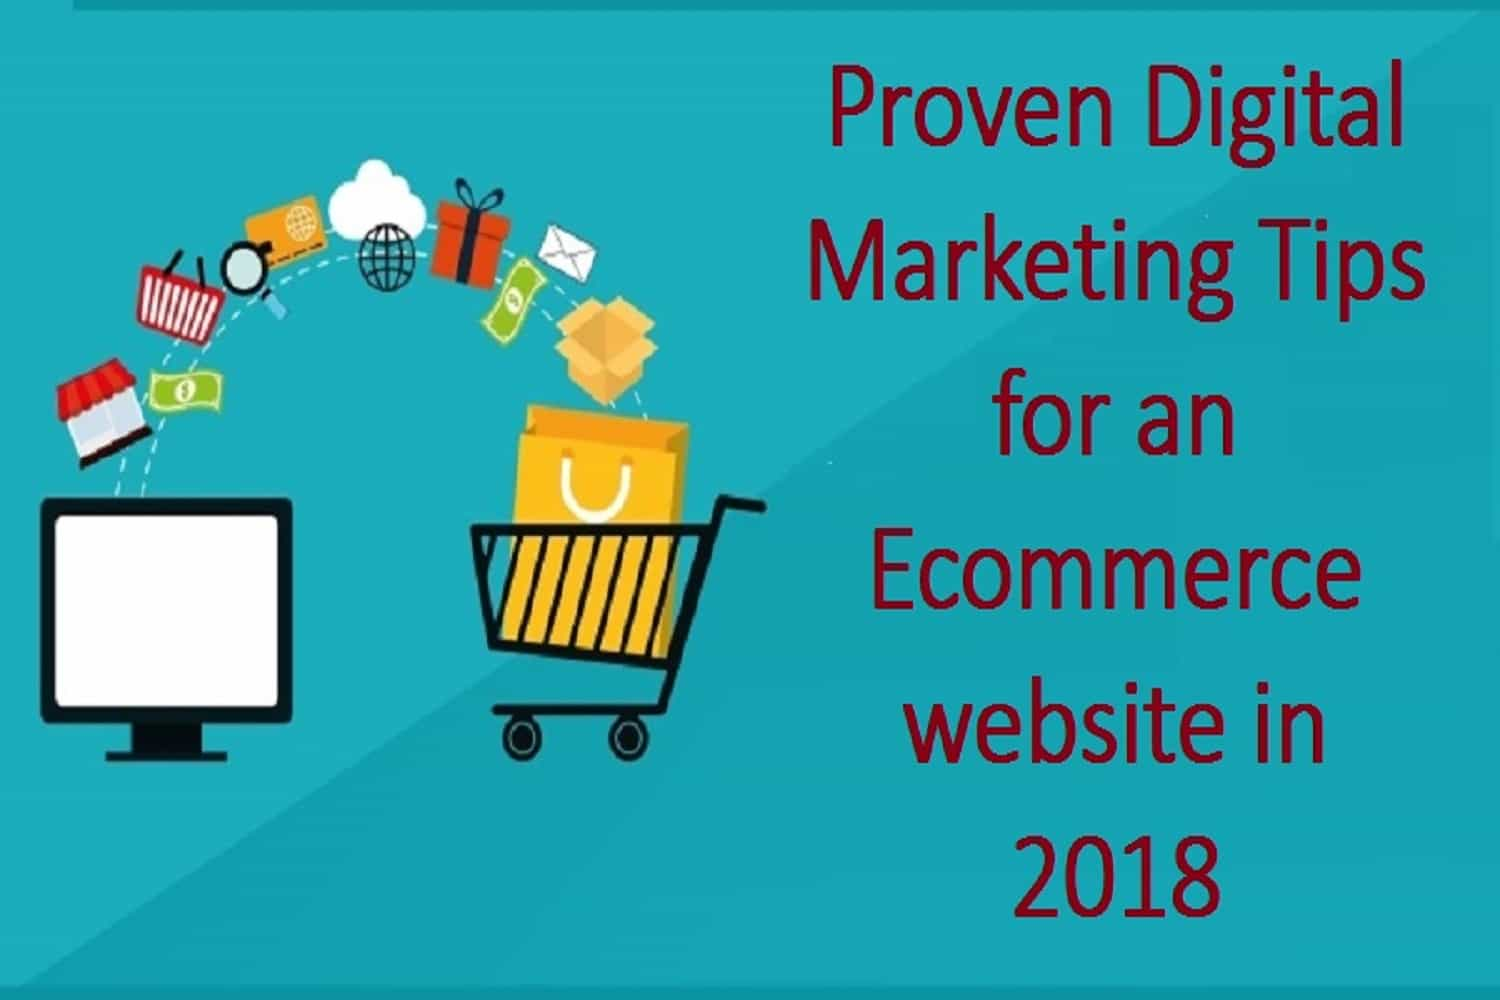 Proven Digital Marketing Tips for an Ecommerce website in 2018